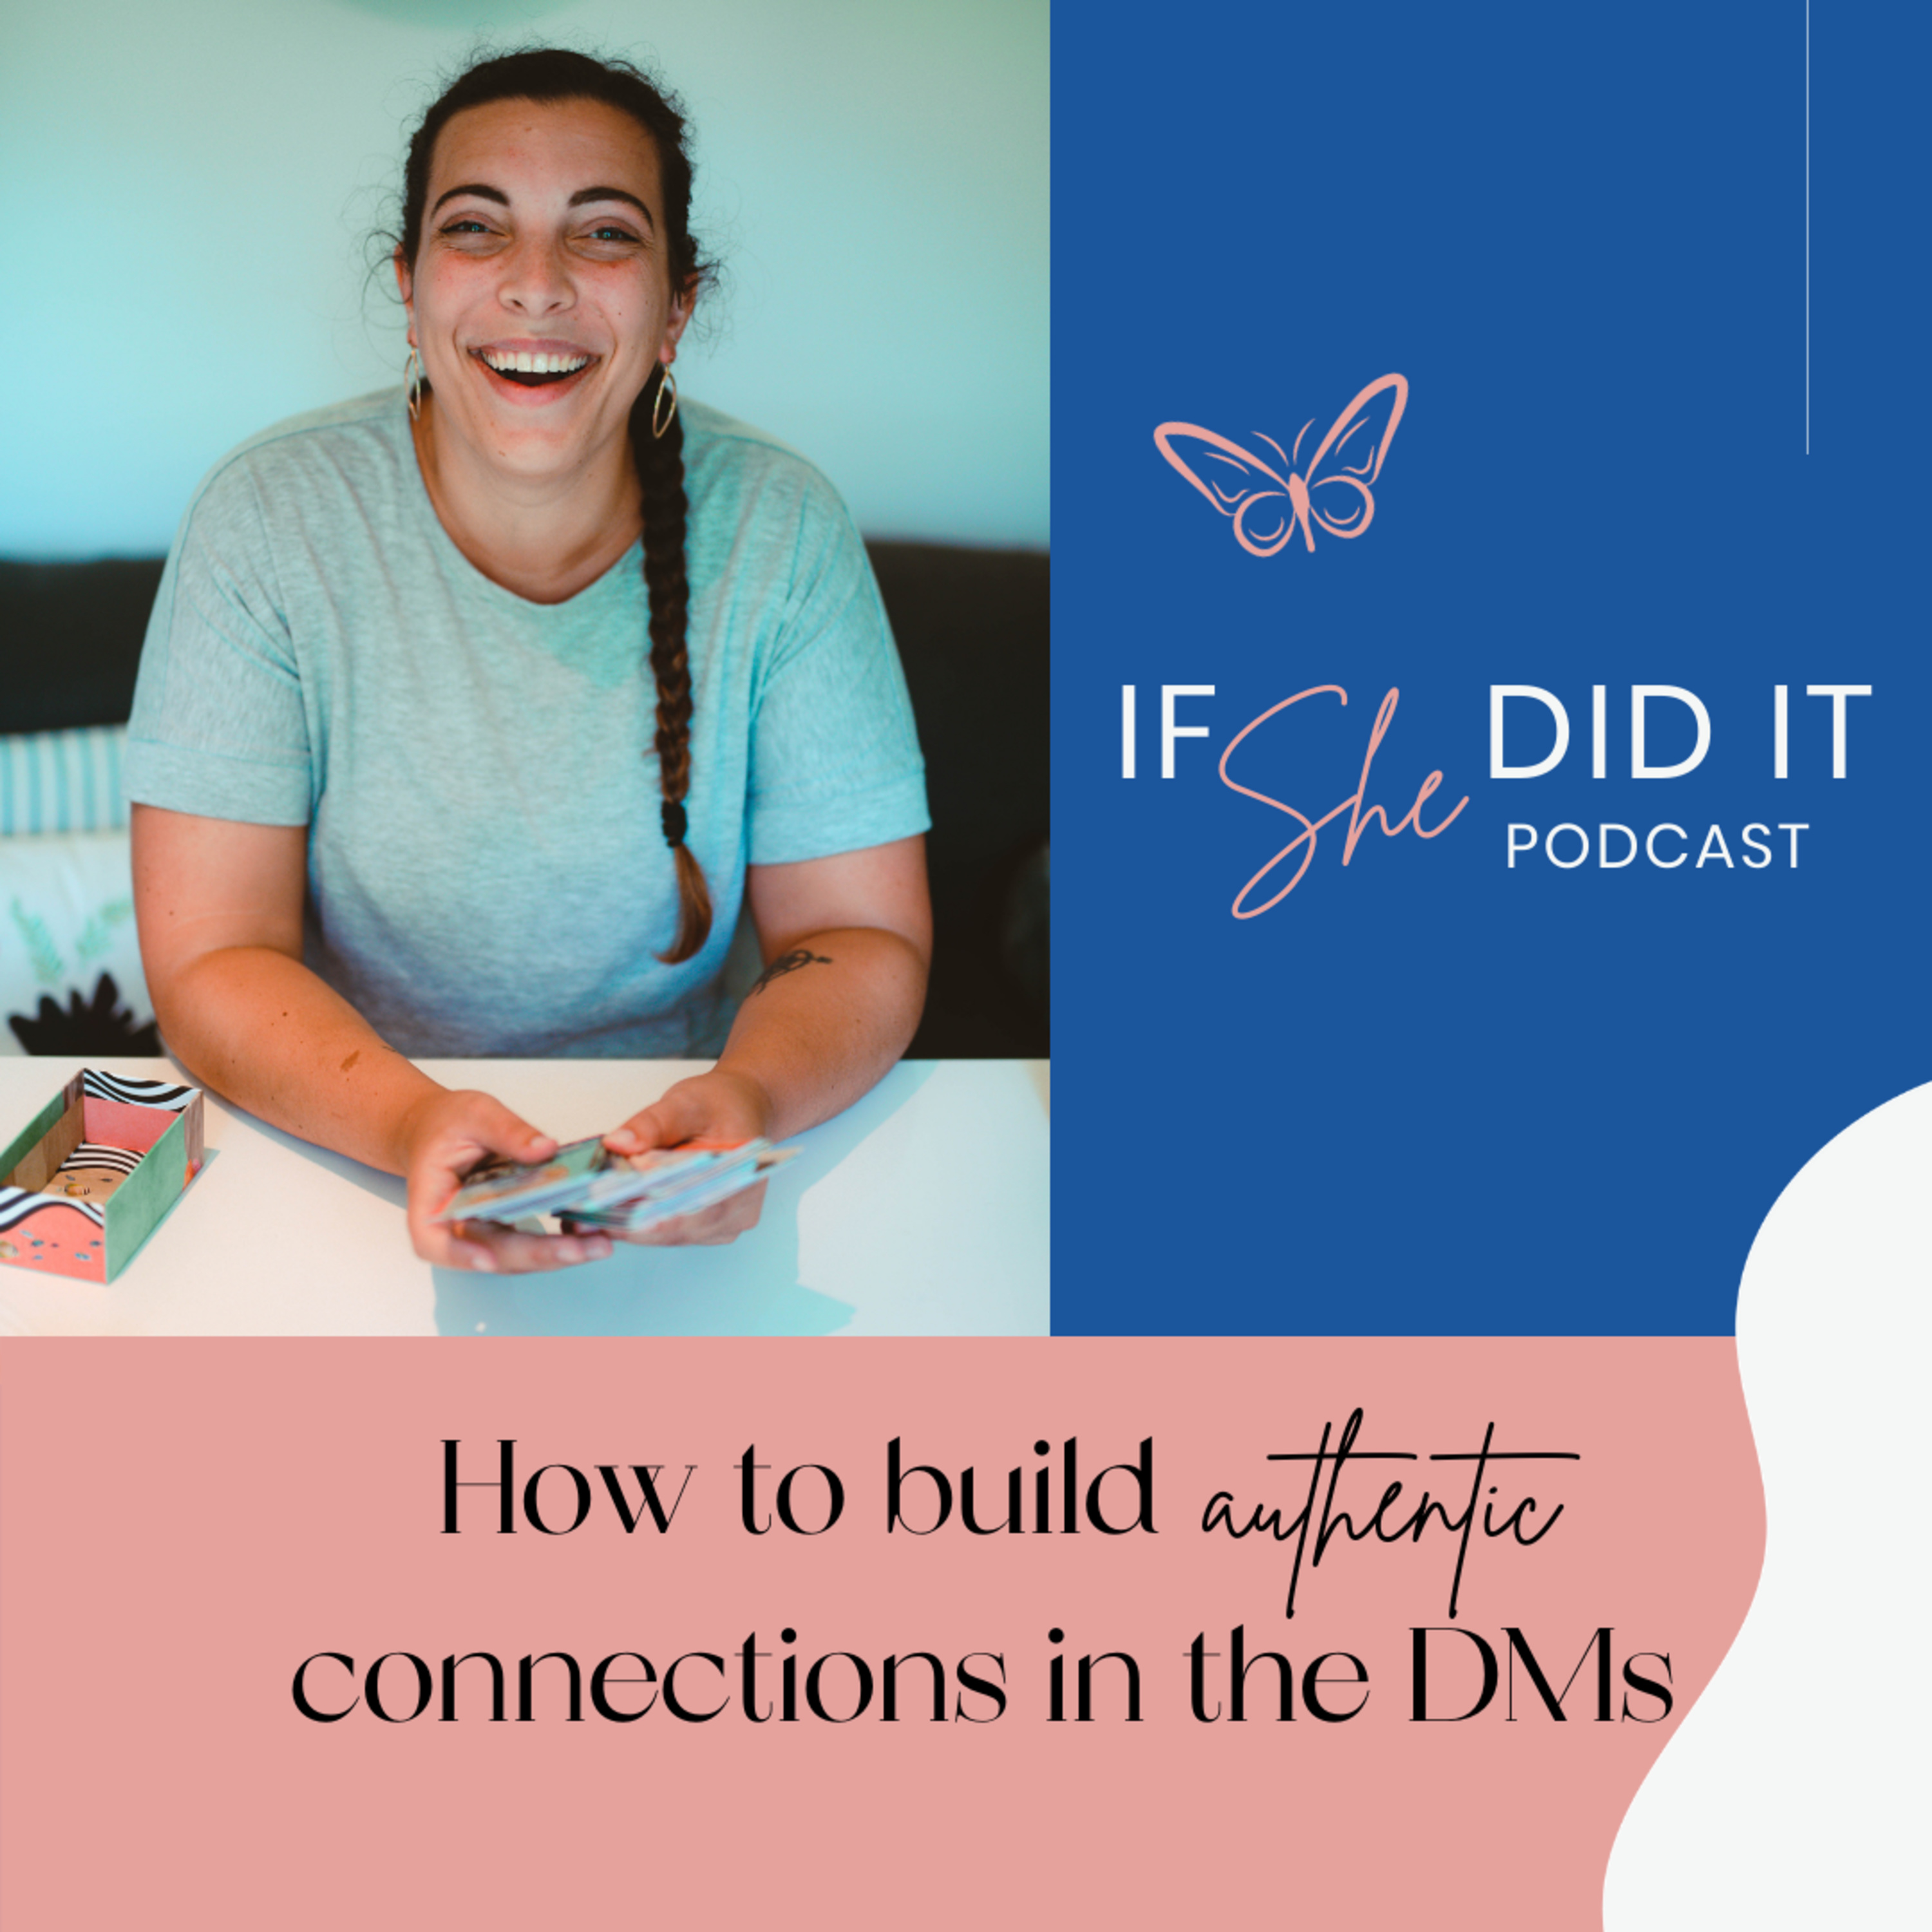 How to build authentic connections in the DMs